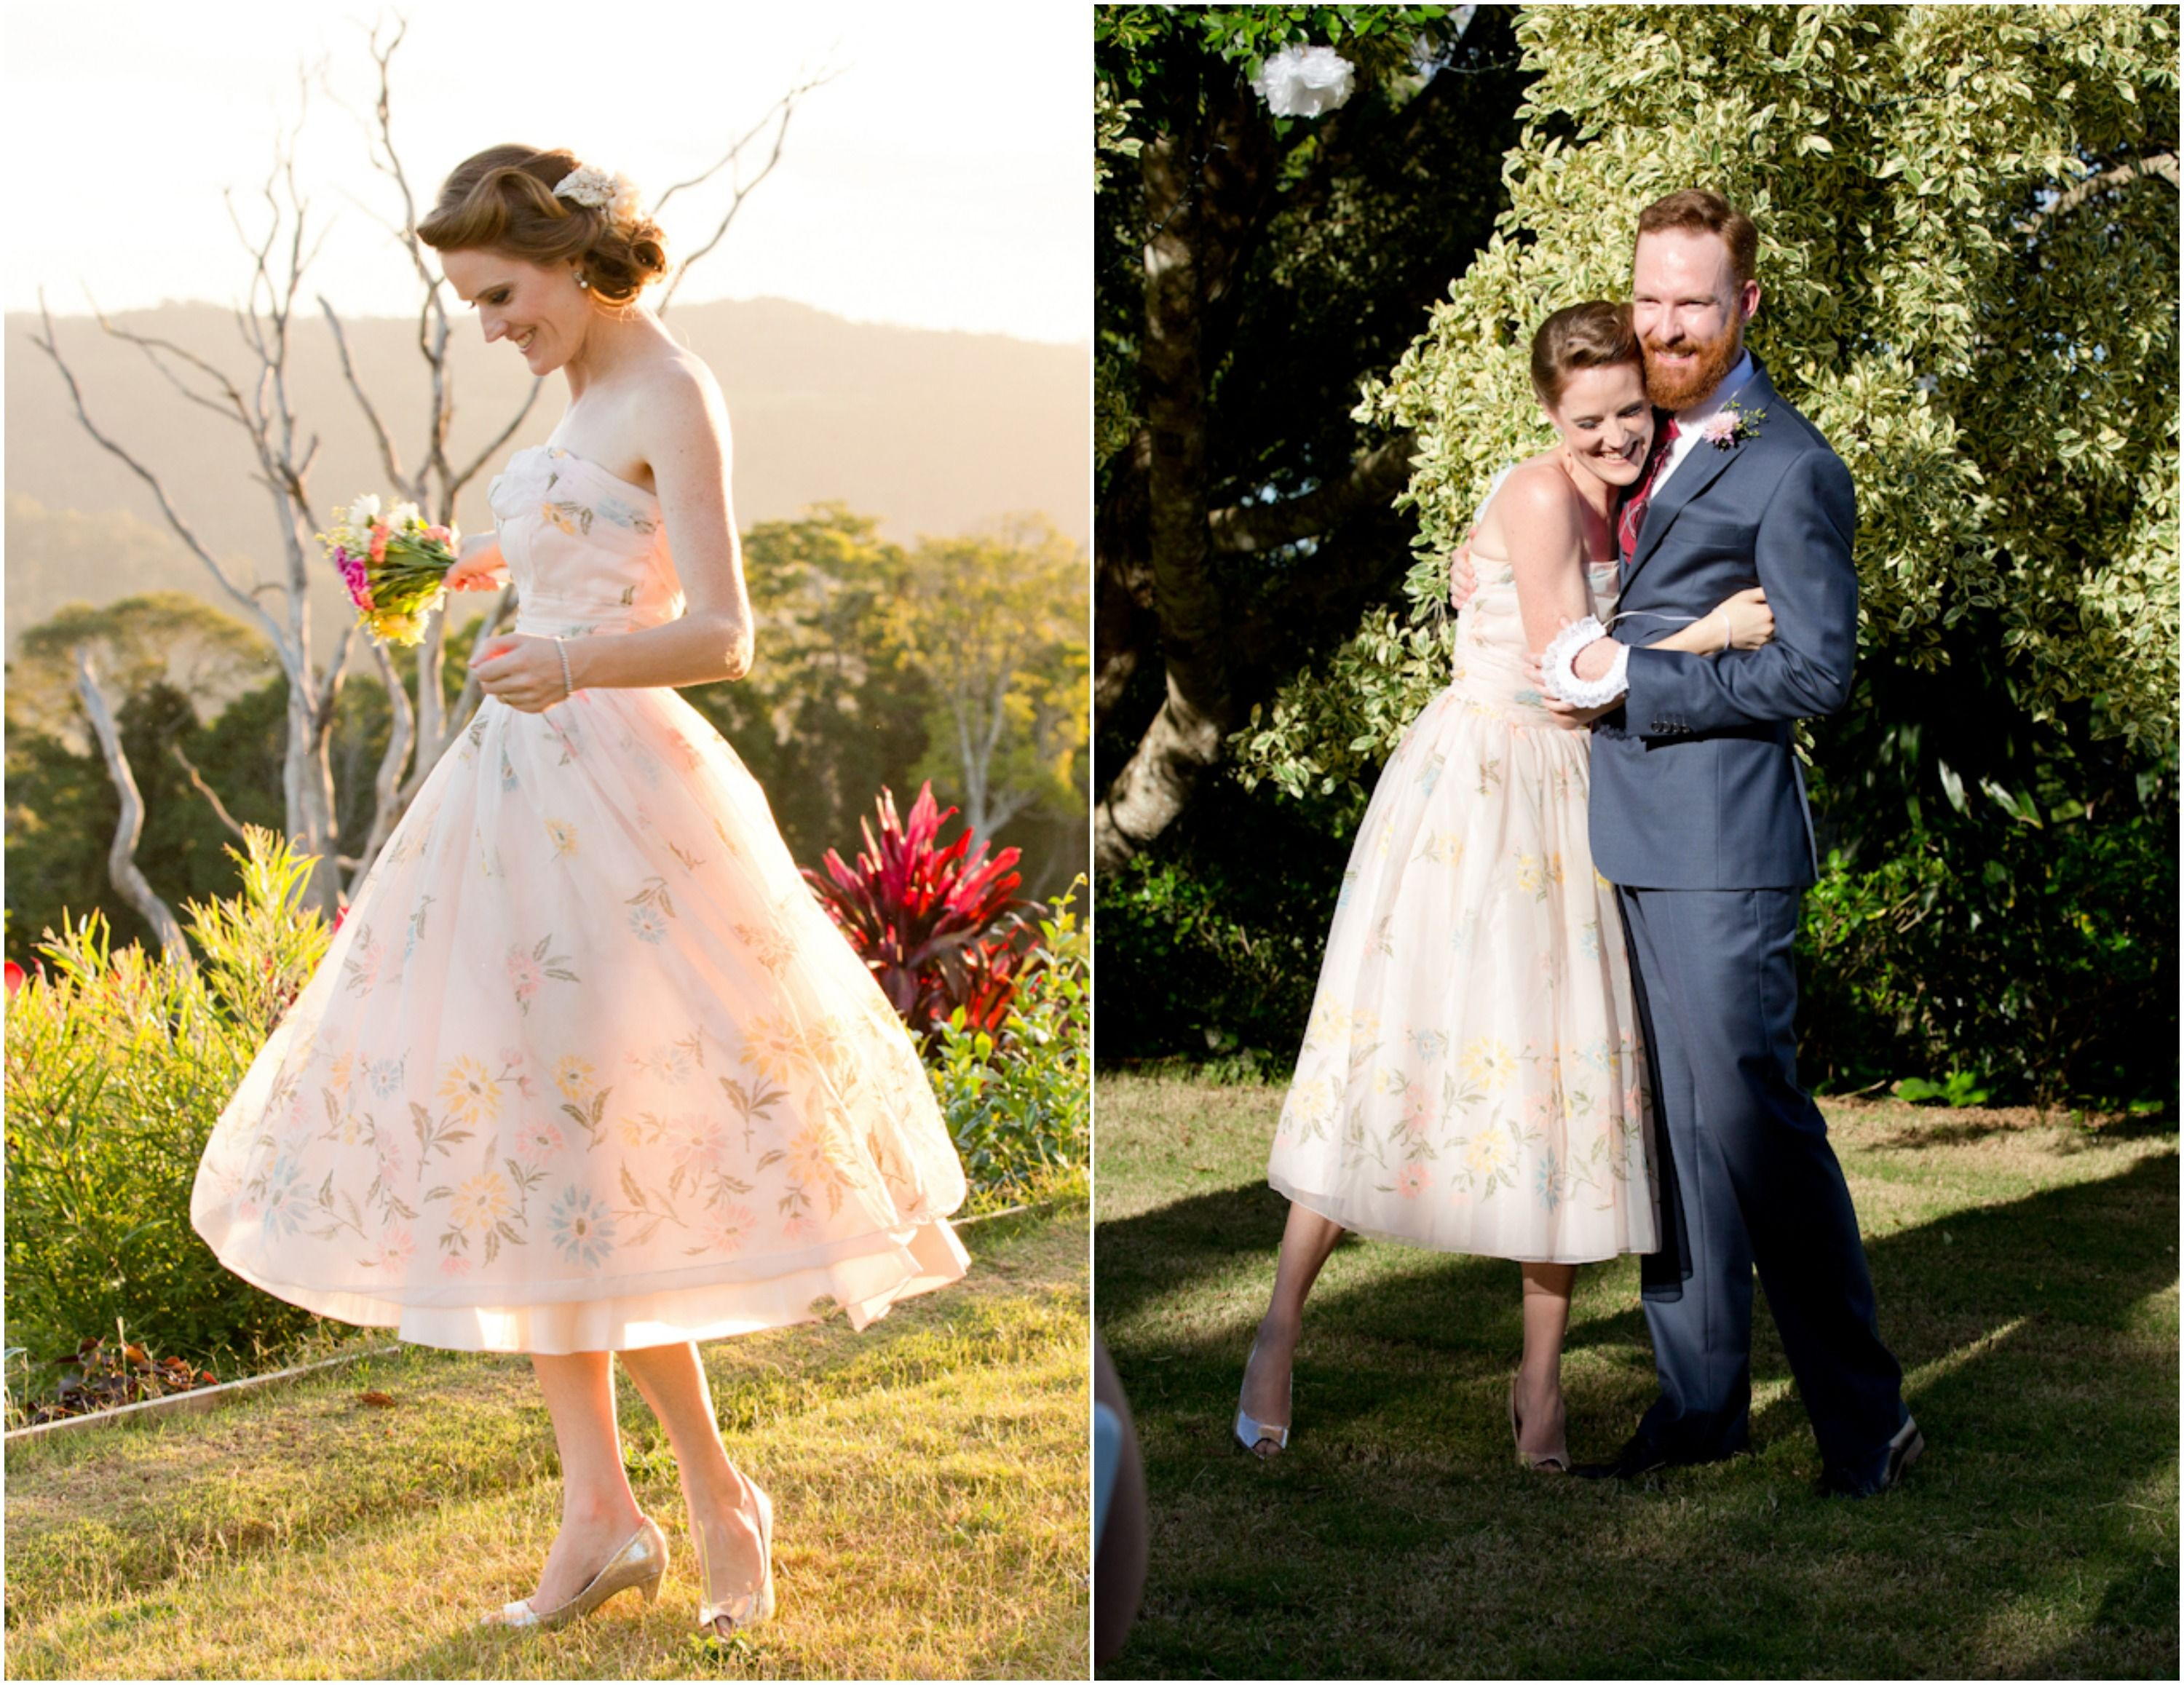 Preppy Wedding Dress Outdoor